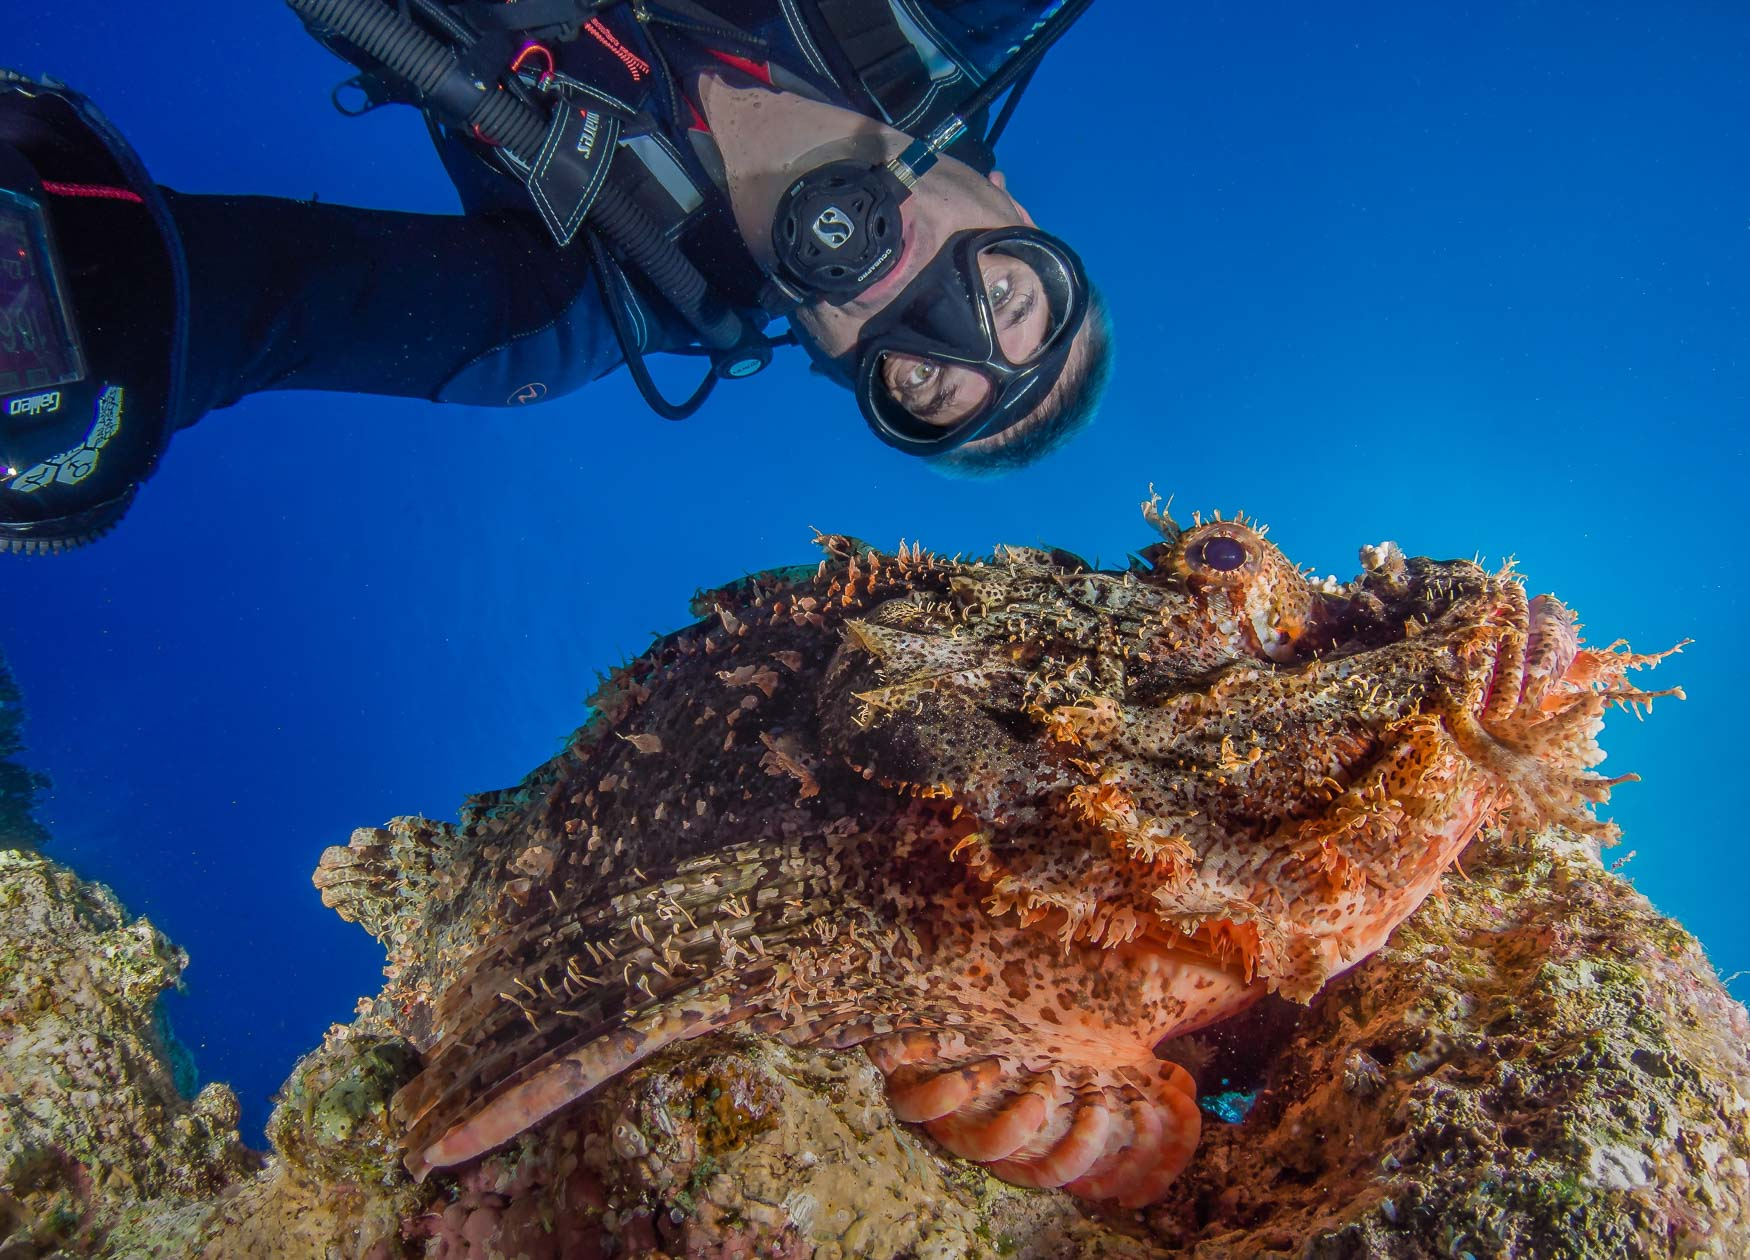 I had spent an entire dive fruitlessly trying to find subjects, and then when I did they weren't in the right position, but just before I had to surface I found this Scorpion Fish and I couldn't for the life of me, get a good original framing, so almost as a throwaway I decided to take a selfie, with my arms stretched and just guessing the framing this was my favourite shot of the whole dive. Funny how the universe throws you an odd shaped bone sometimes !